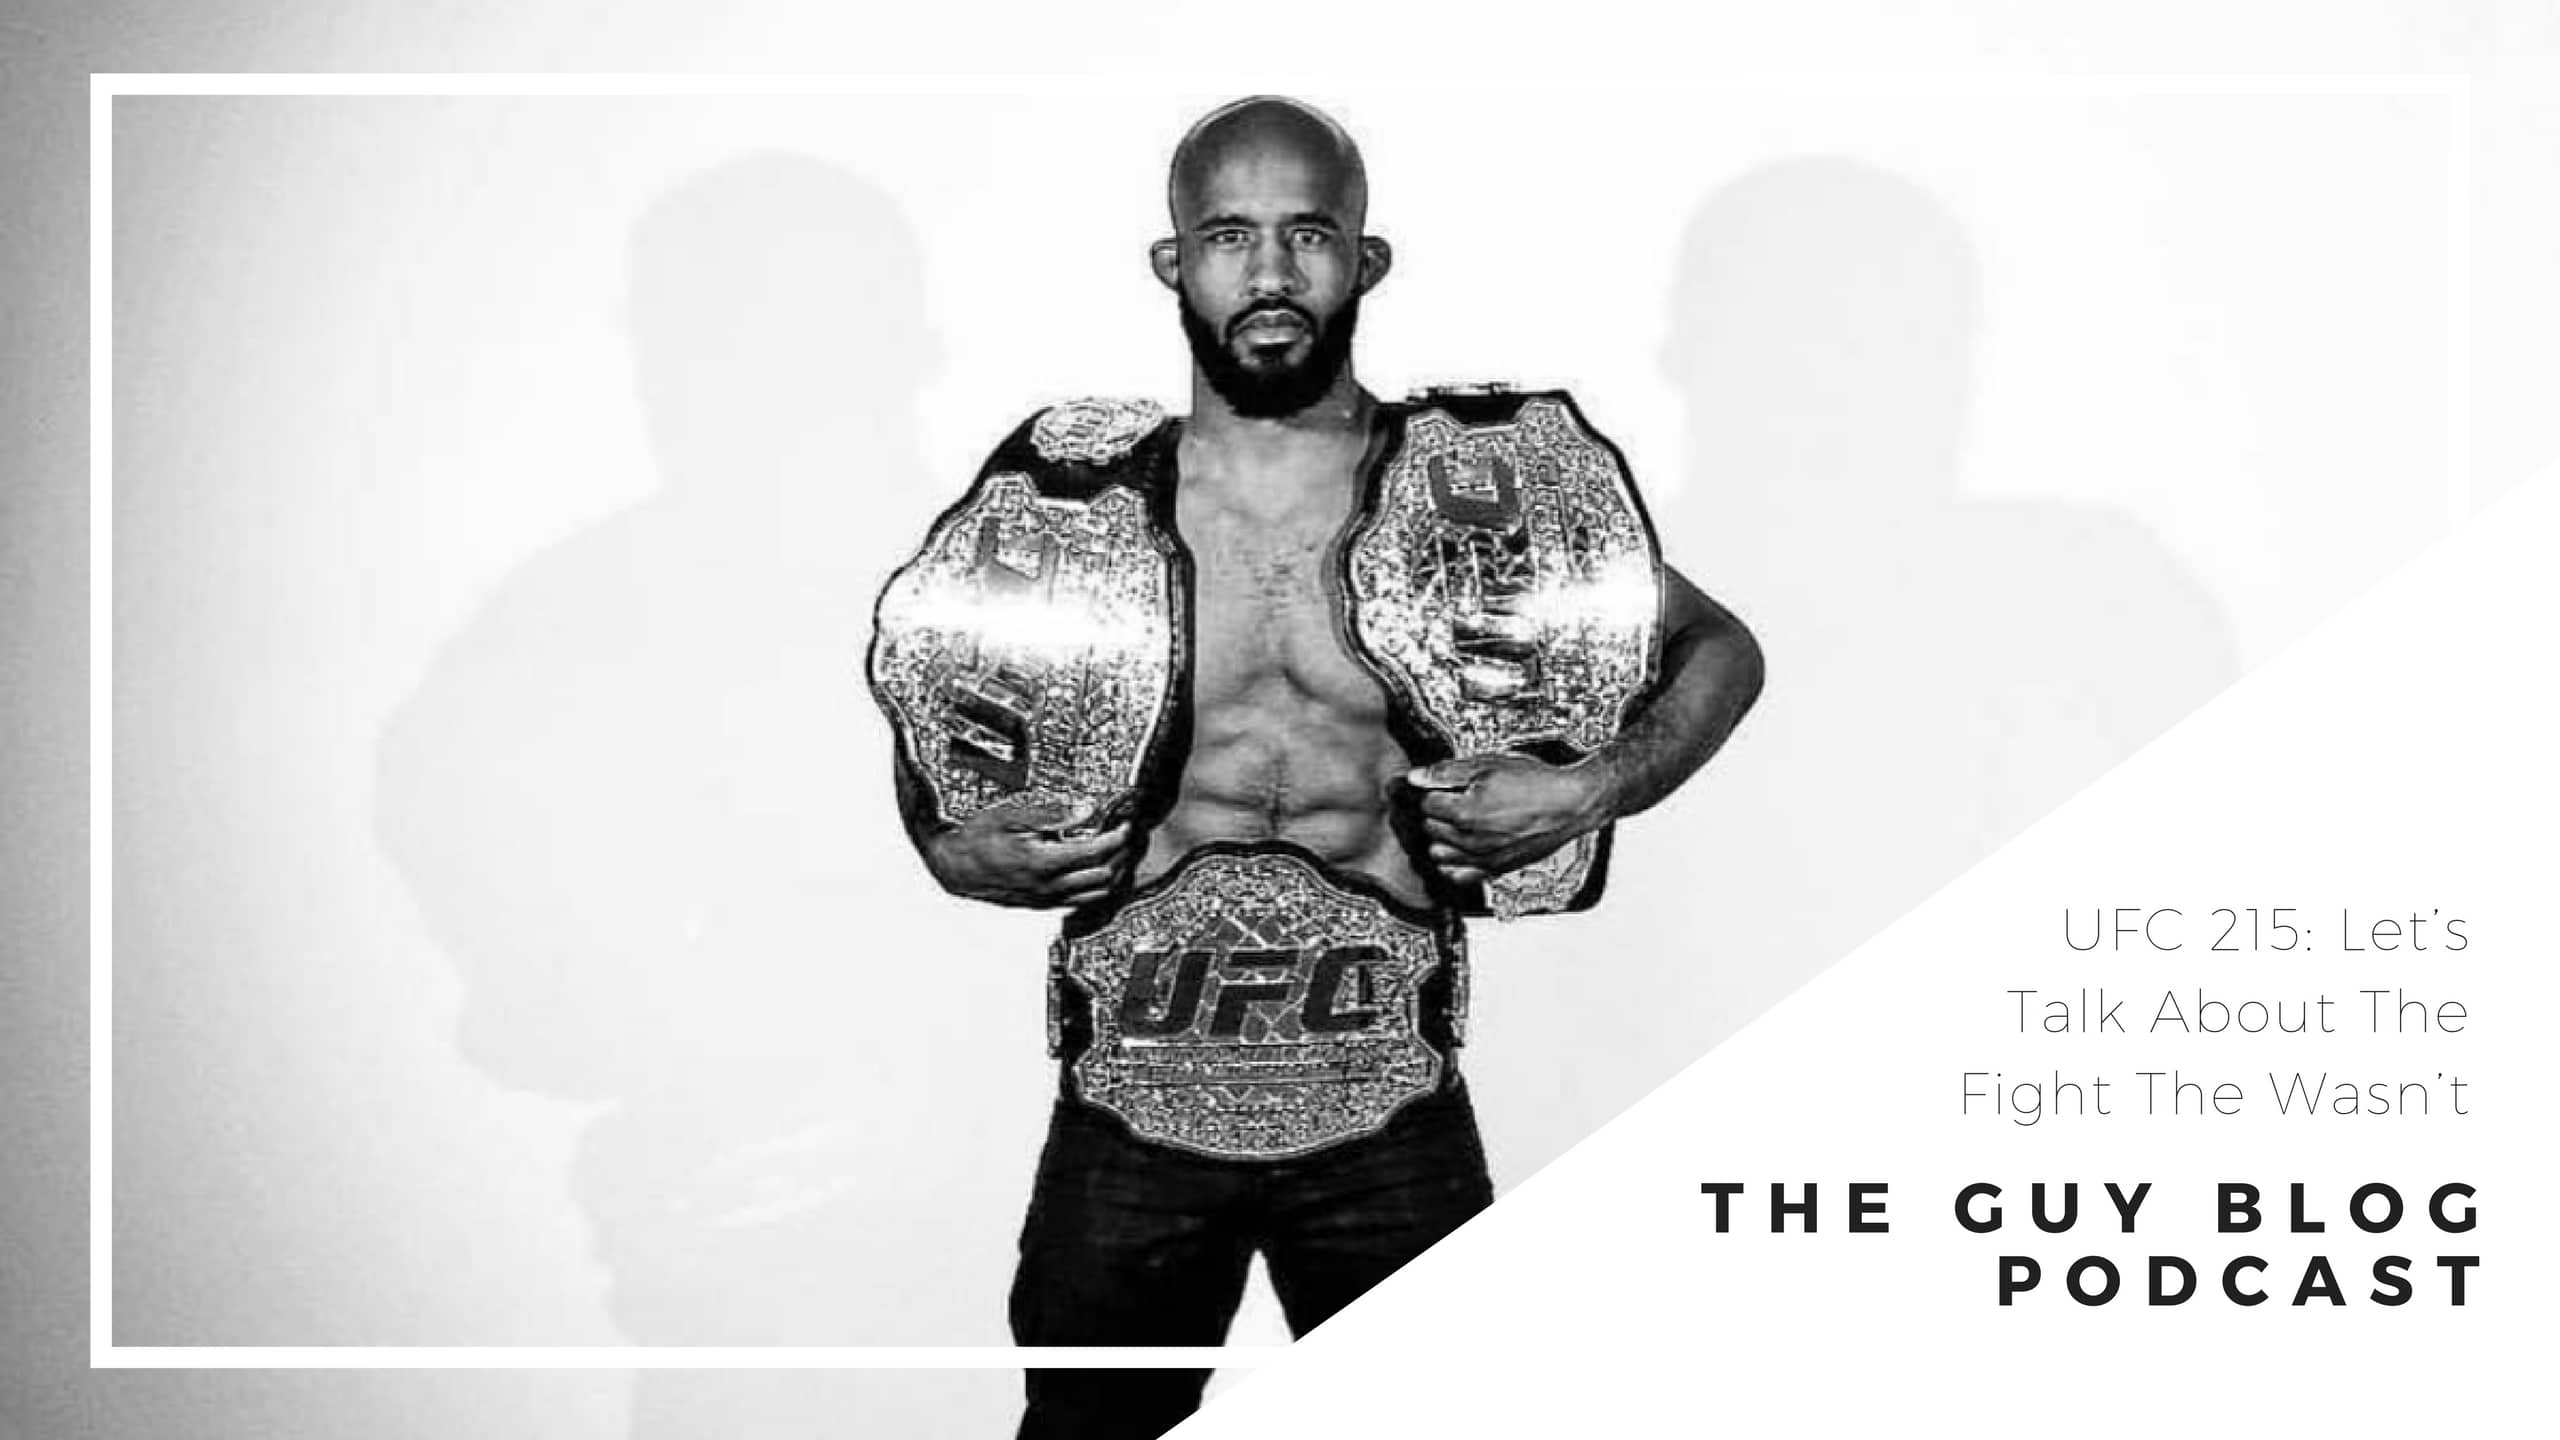 TGBP 033 UFC 215: Let's Talk About The Fight The Wasn't